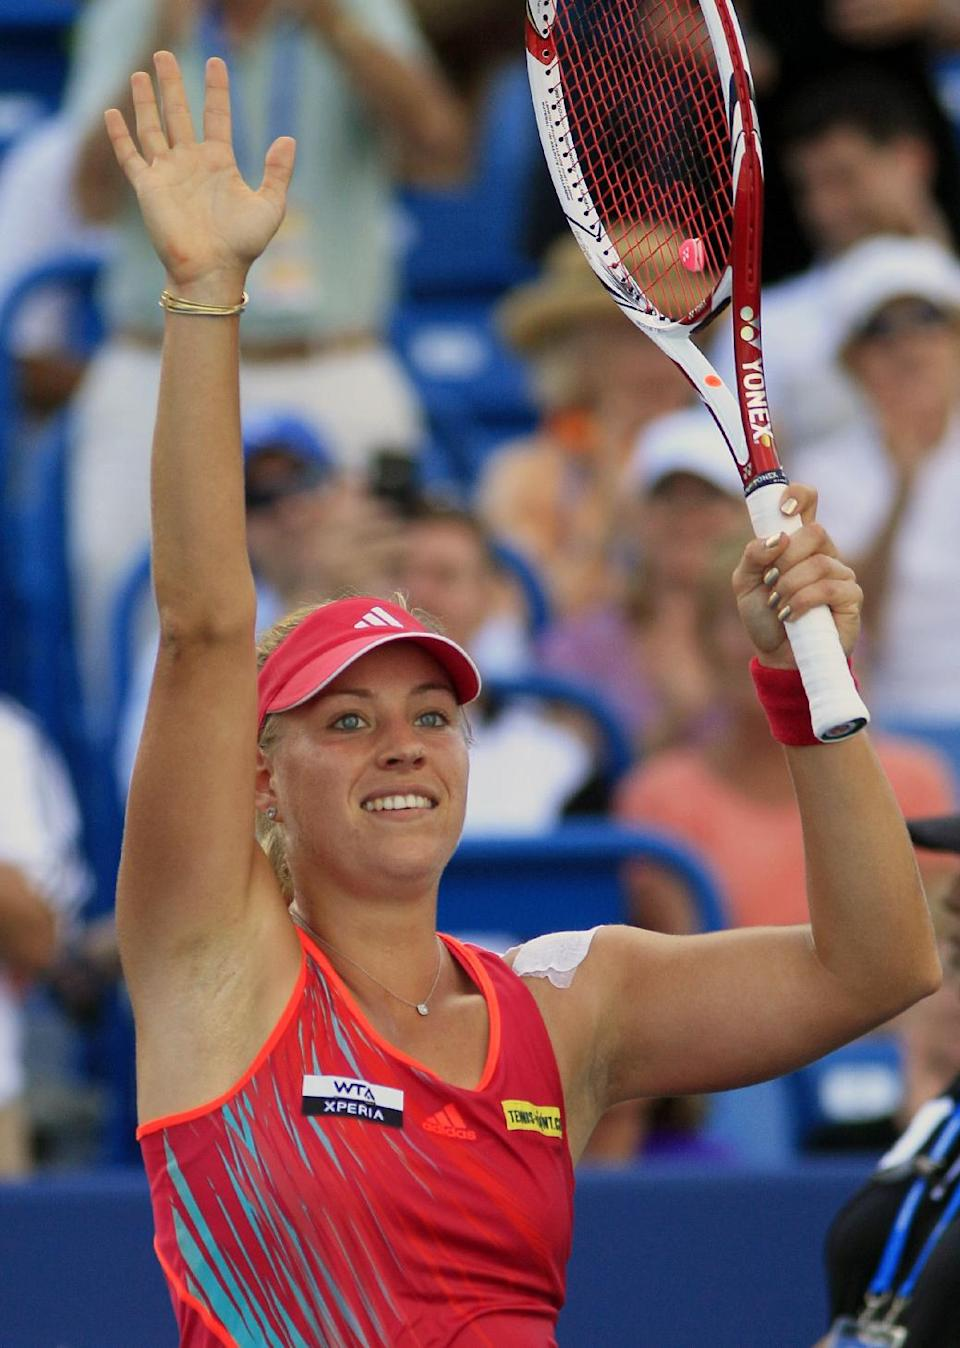 Angelique Kerber, from Germany, acknowledges the crowd after defeating Serena Williams 6-4, 6-4 in a quarterfinal at the Western & Southern Open tennis tournament on Friday, Aug. 17, 2012, in Mason, Ohio. (AP Photo/Al Behrman)